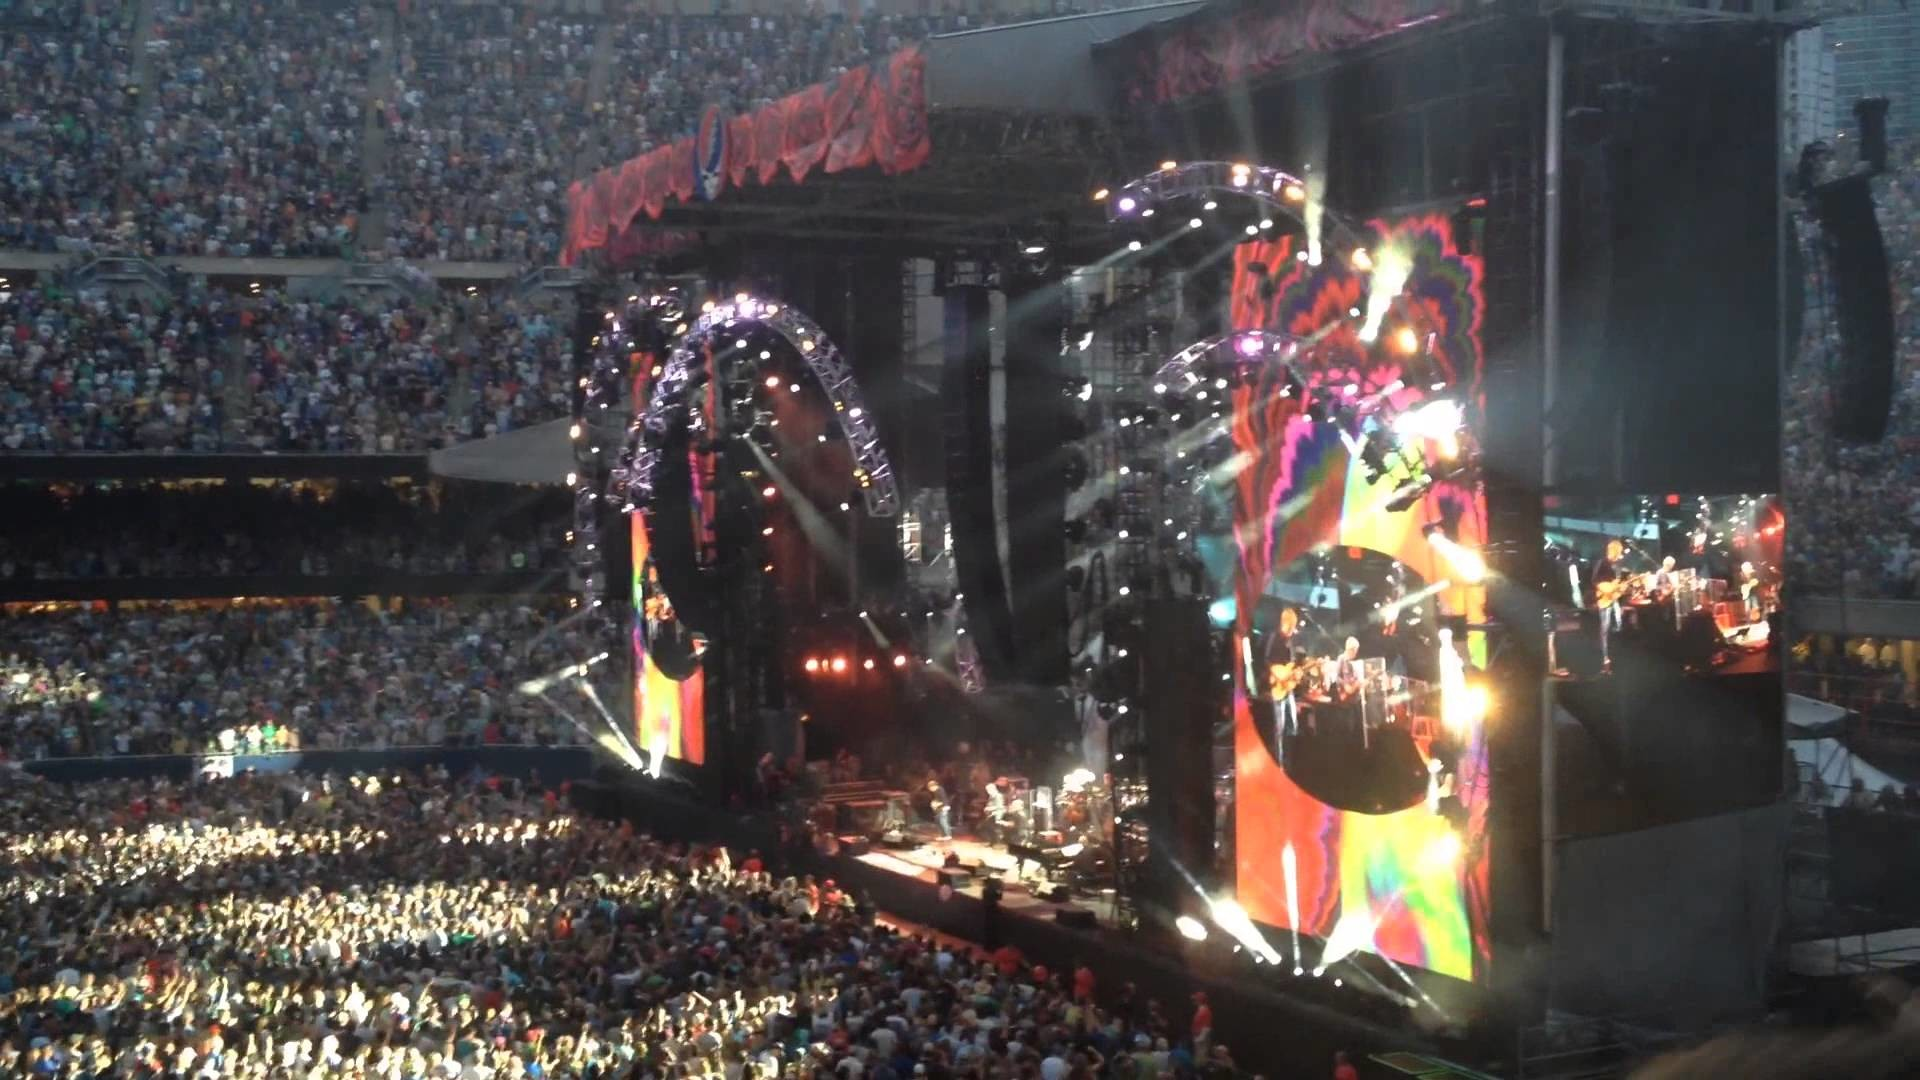 1920x1080 2015.07.03 Grateful Dead Soldier Field - The Music Had to Stop